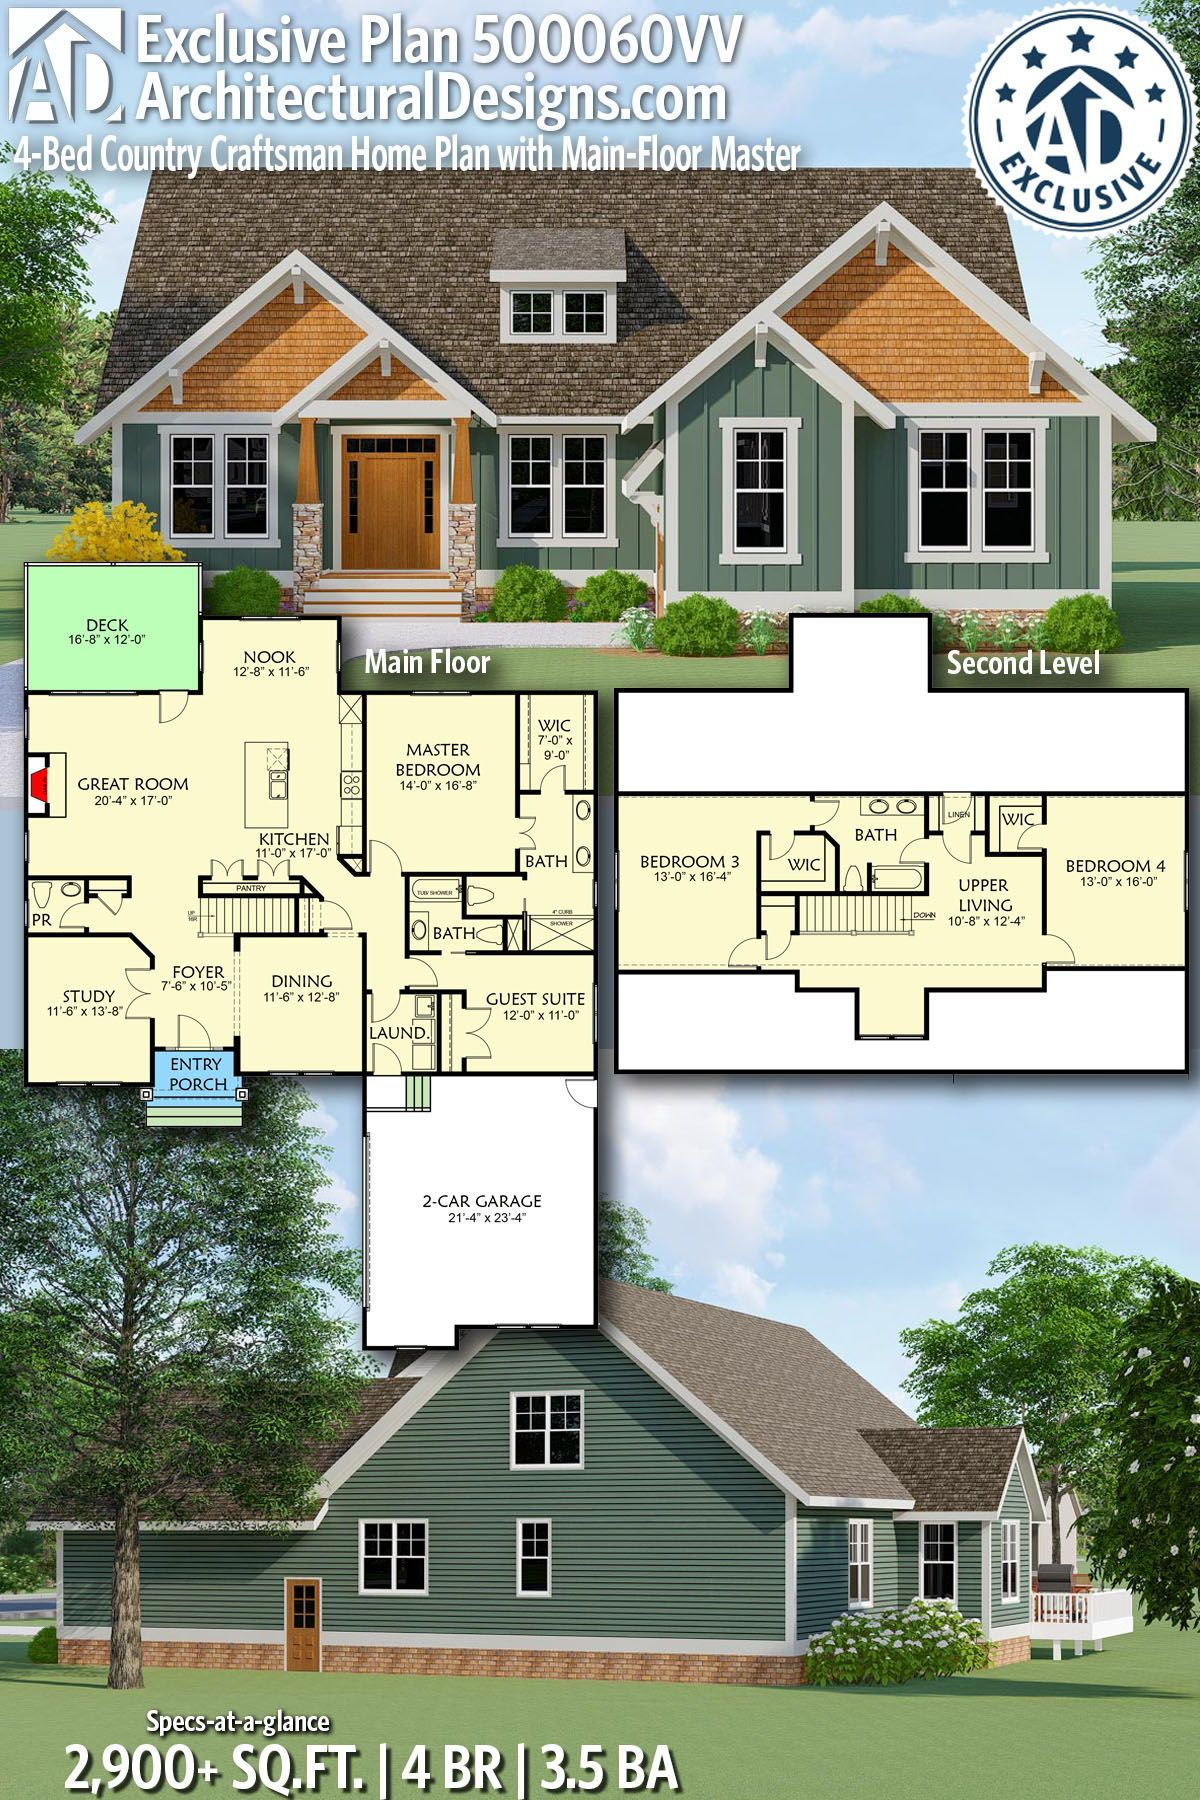 Plan 500060vv 4 Bed Country Craftsman Home Plan With Main Floor Master Craftsman House Plans House Plans Craftsman House